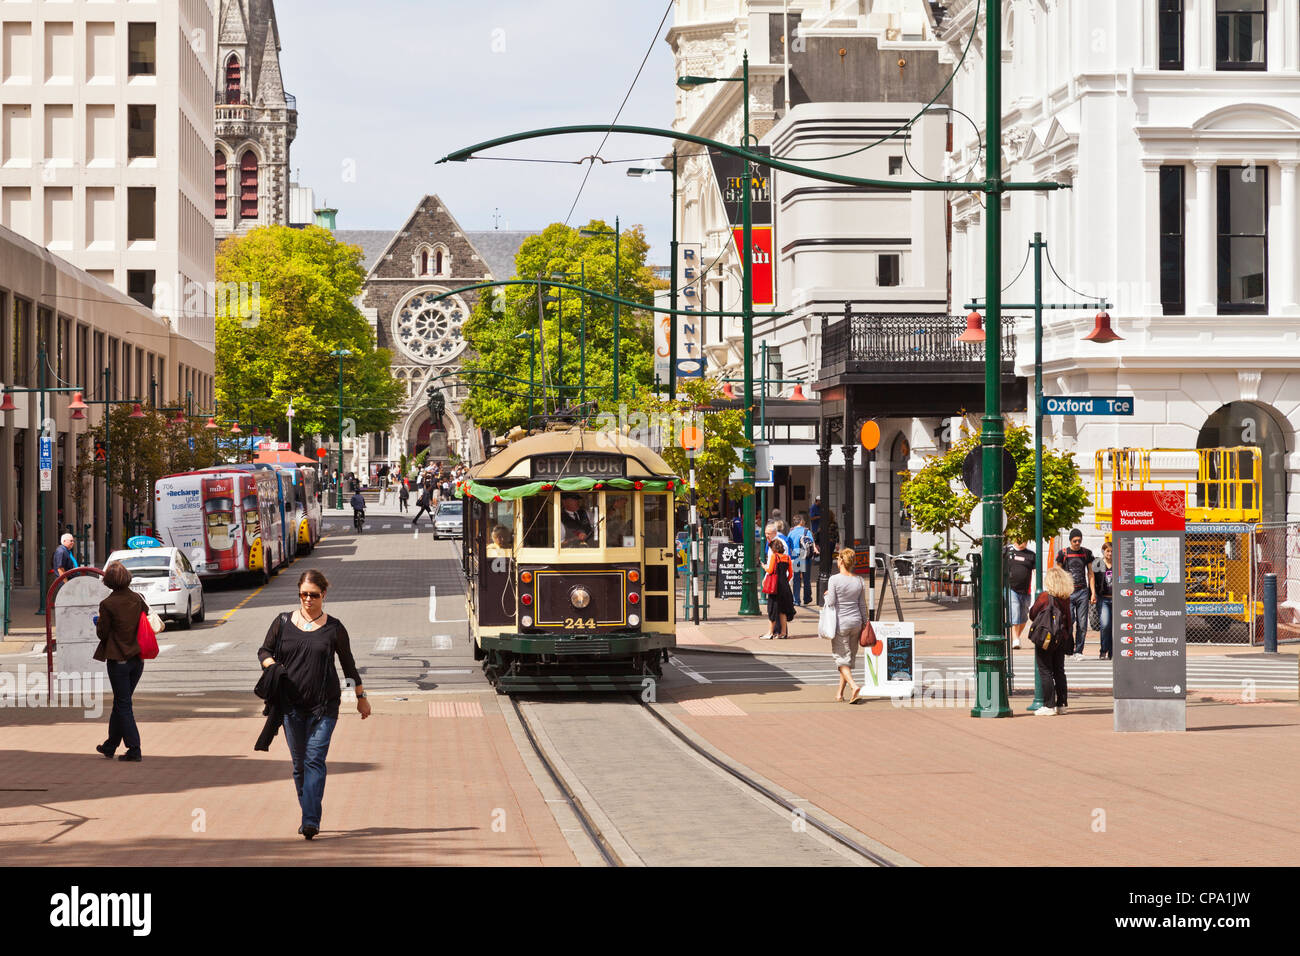 A busy street scene in central Christchurch with a tram, tourists, coaches and the cathedral in the background. - Stock Image